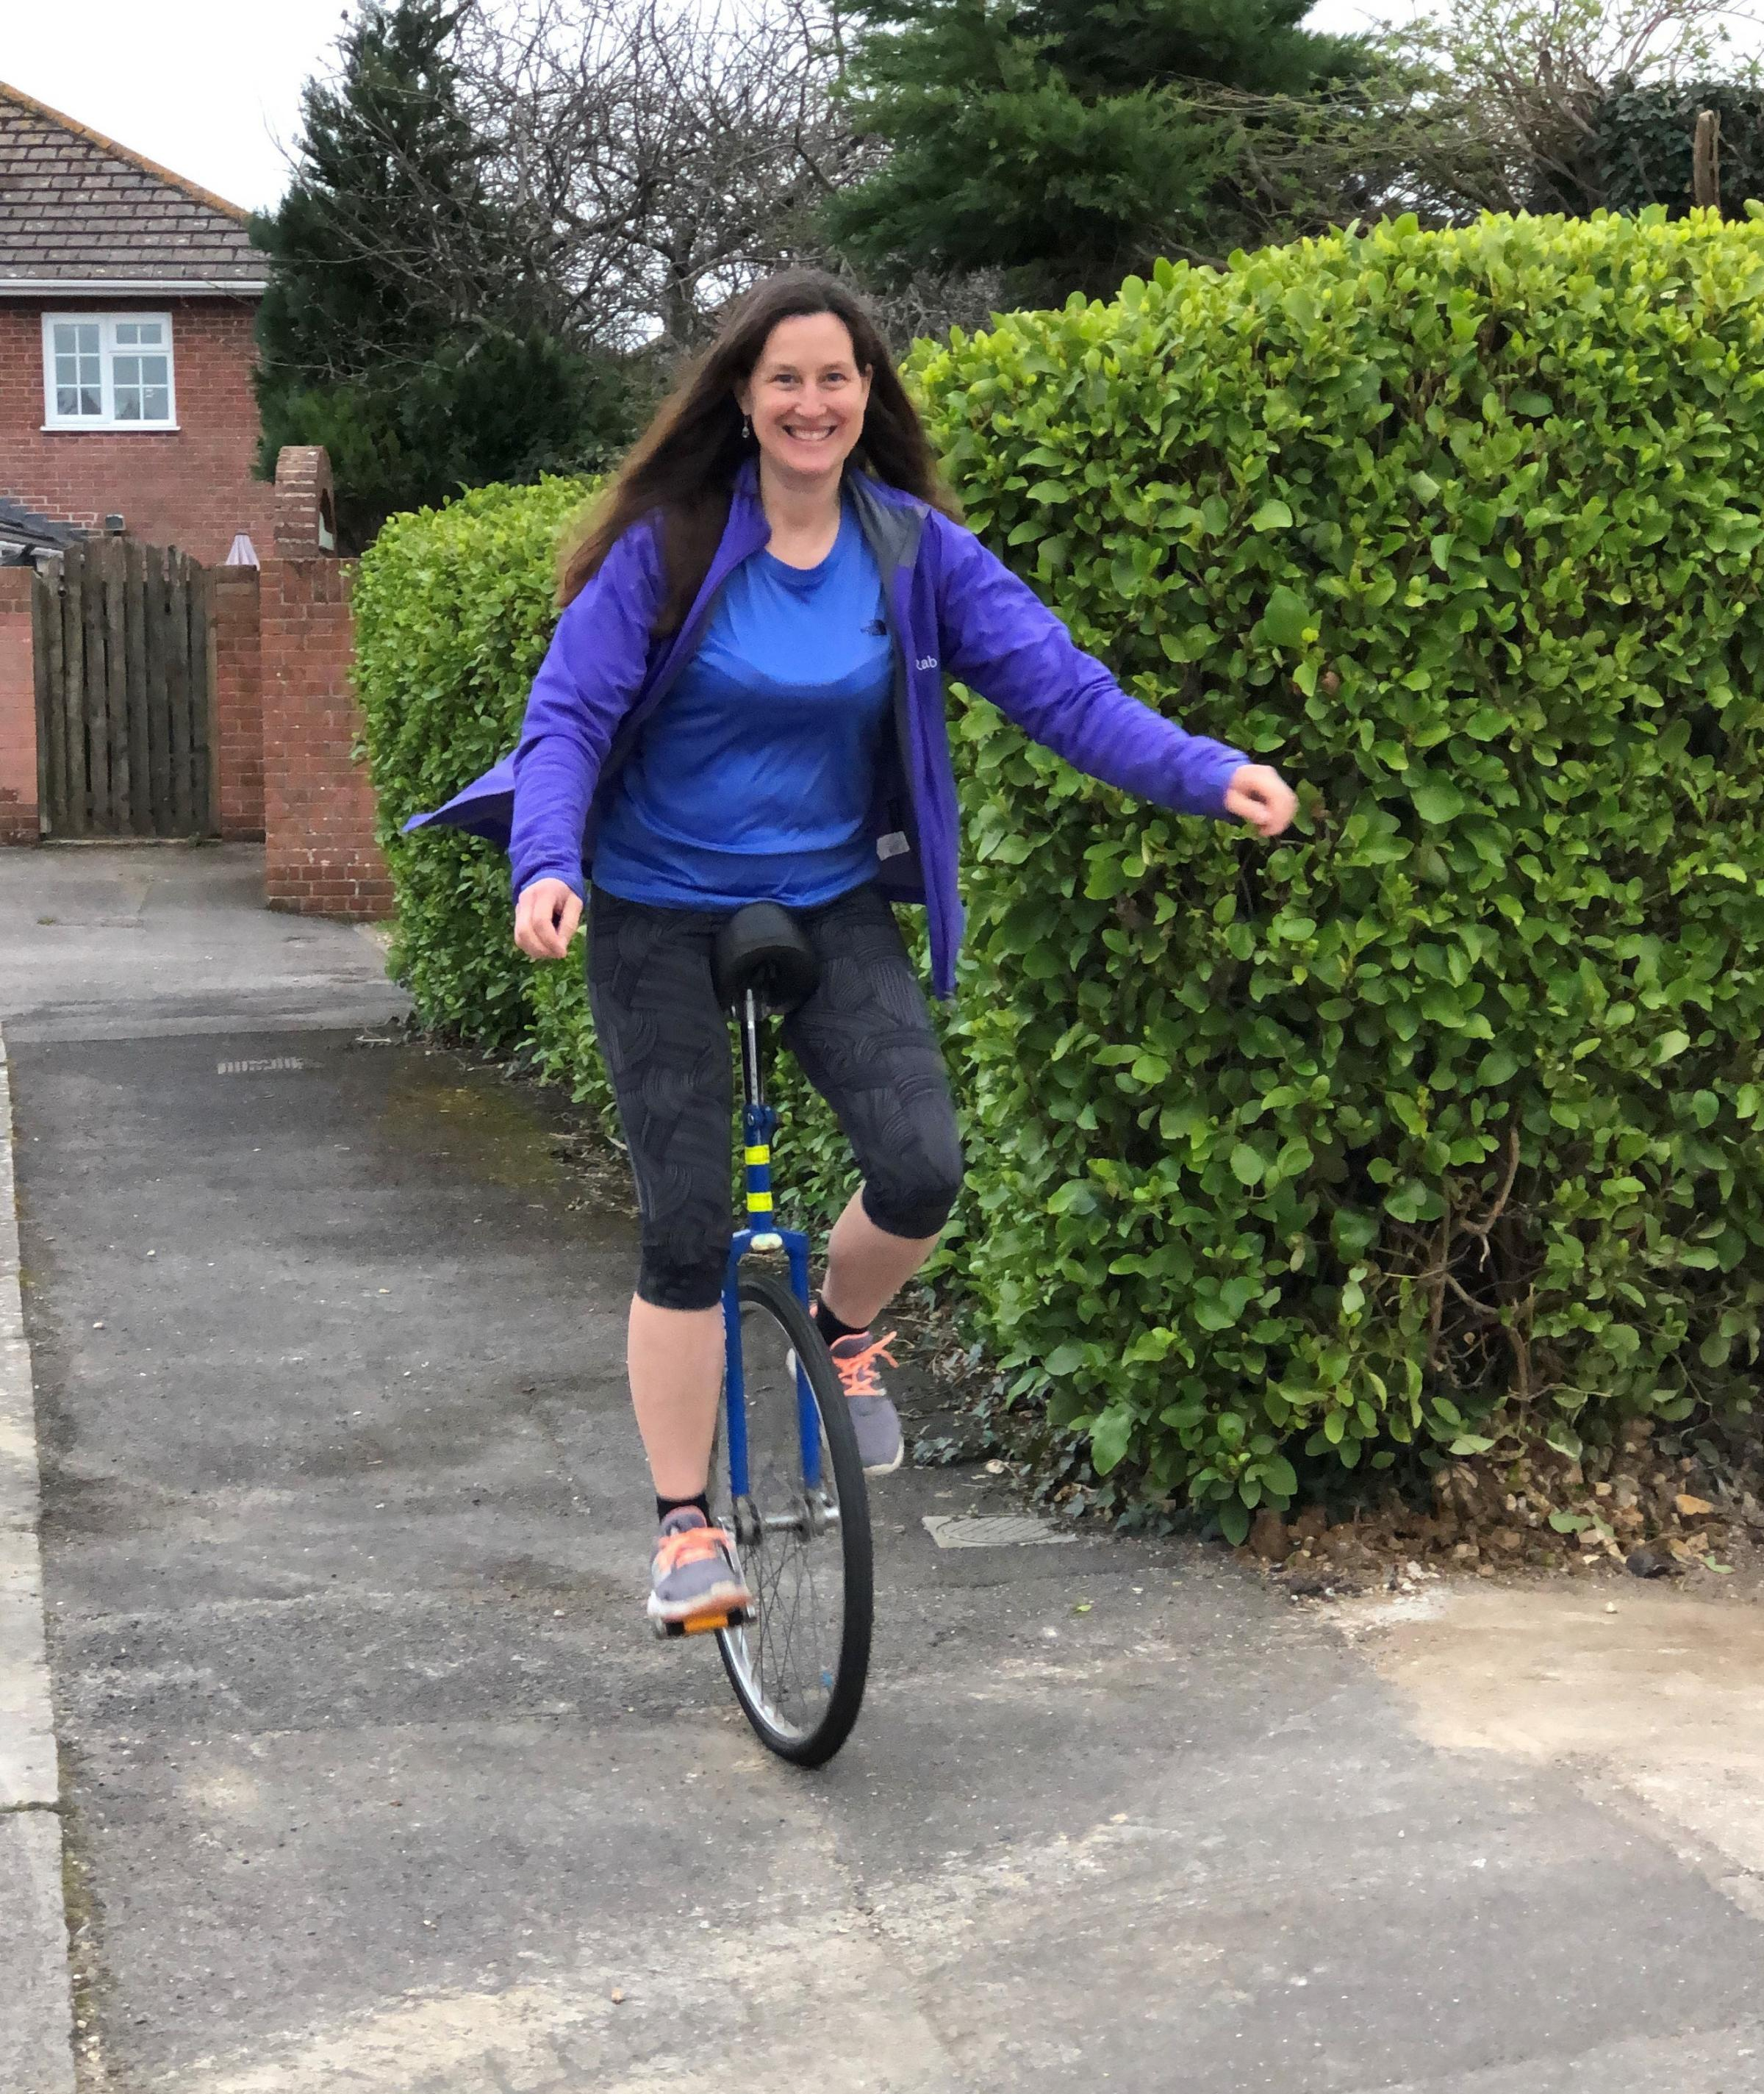 Here's why this woman will ride a unicycle through Weymouth